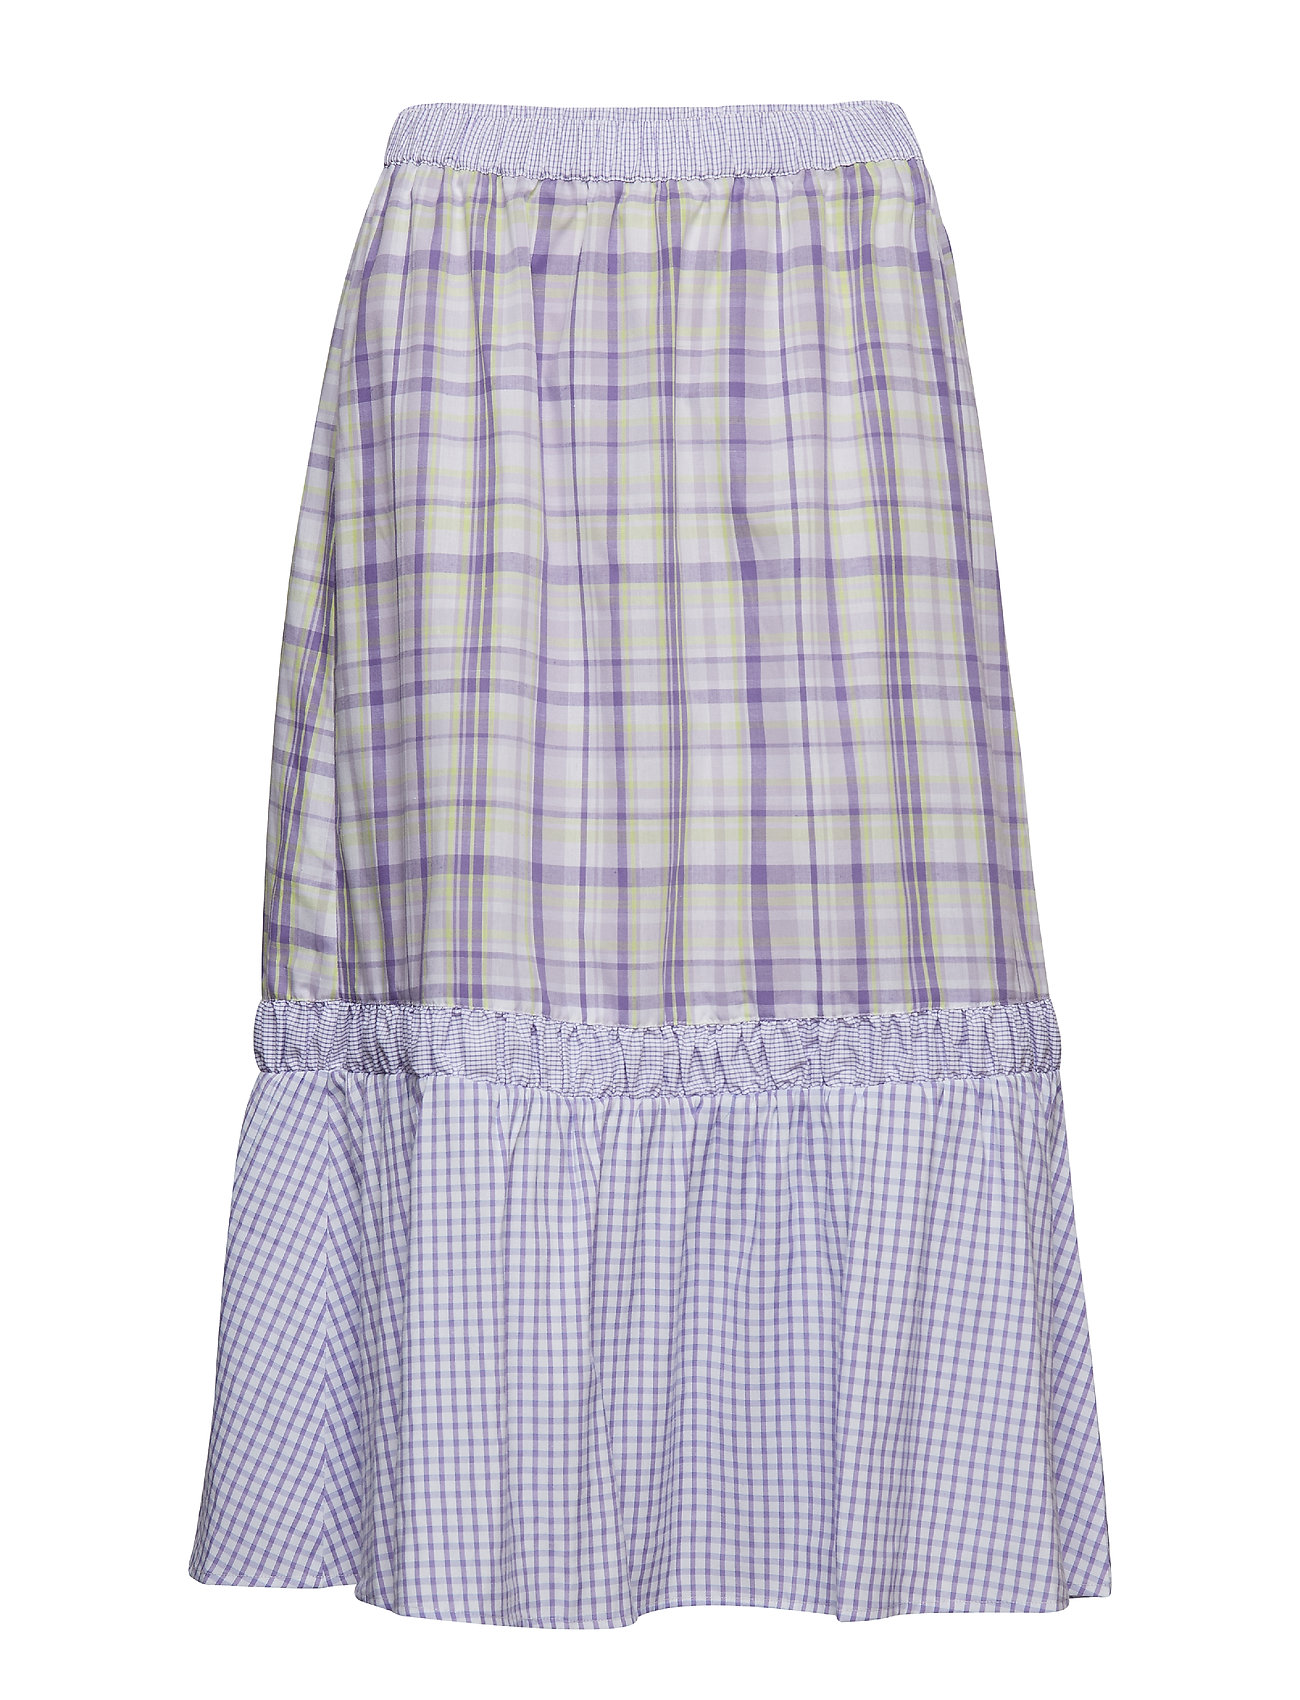 InWear Nita Skirt - MIX PURPLE ROSE CHECK